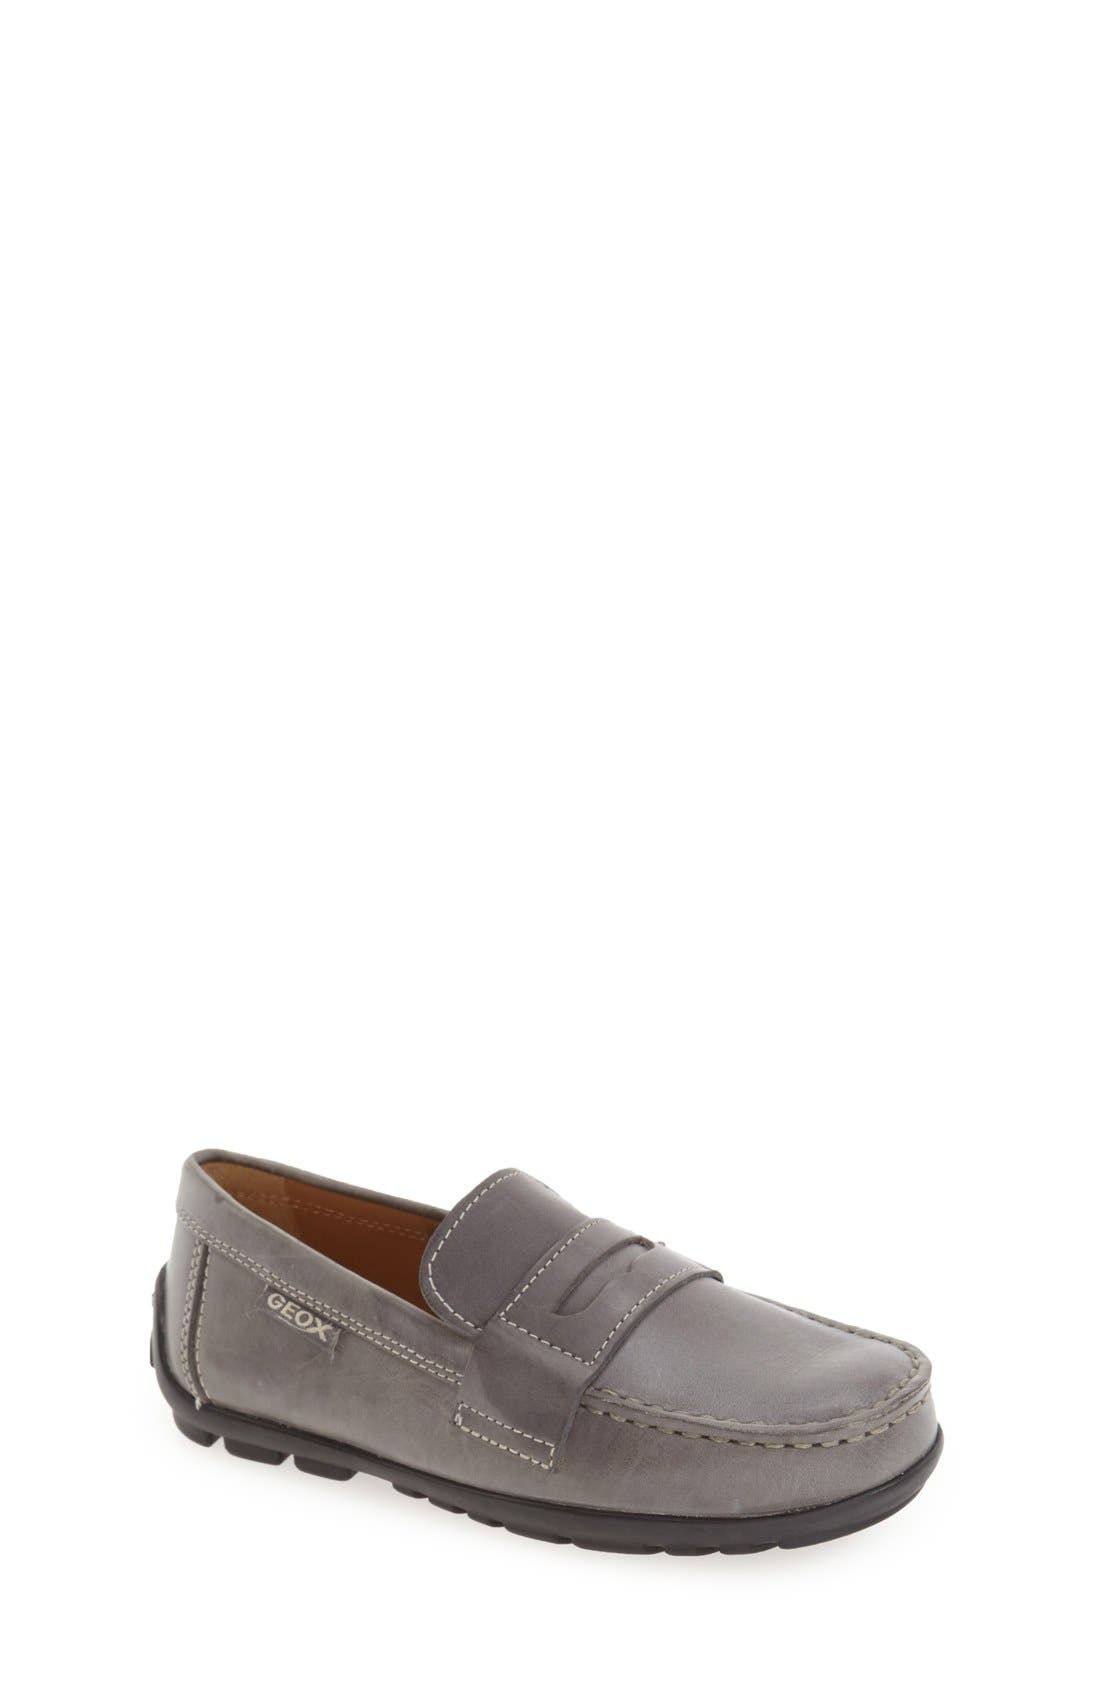 'Fast' Penny Loafer,                         Main,                         color, Dark Grey